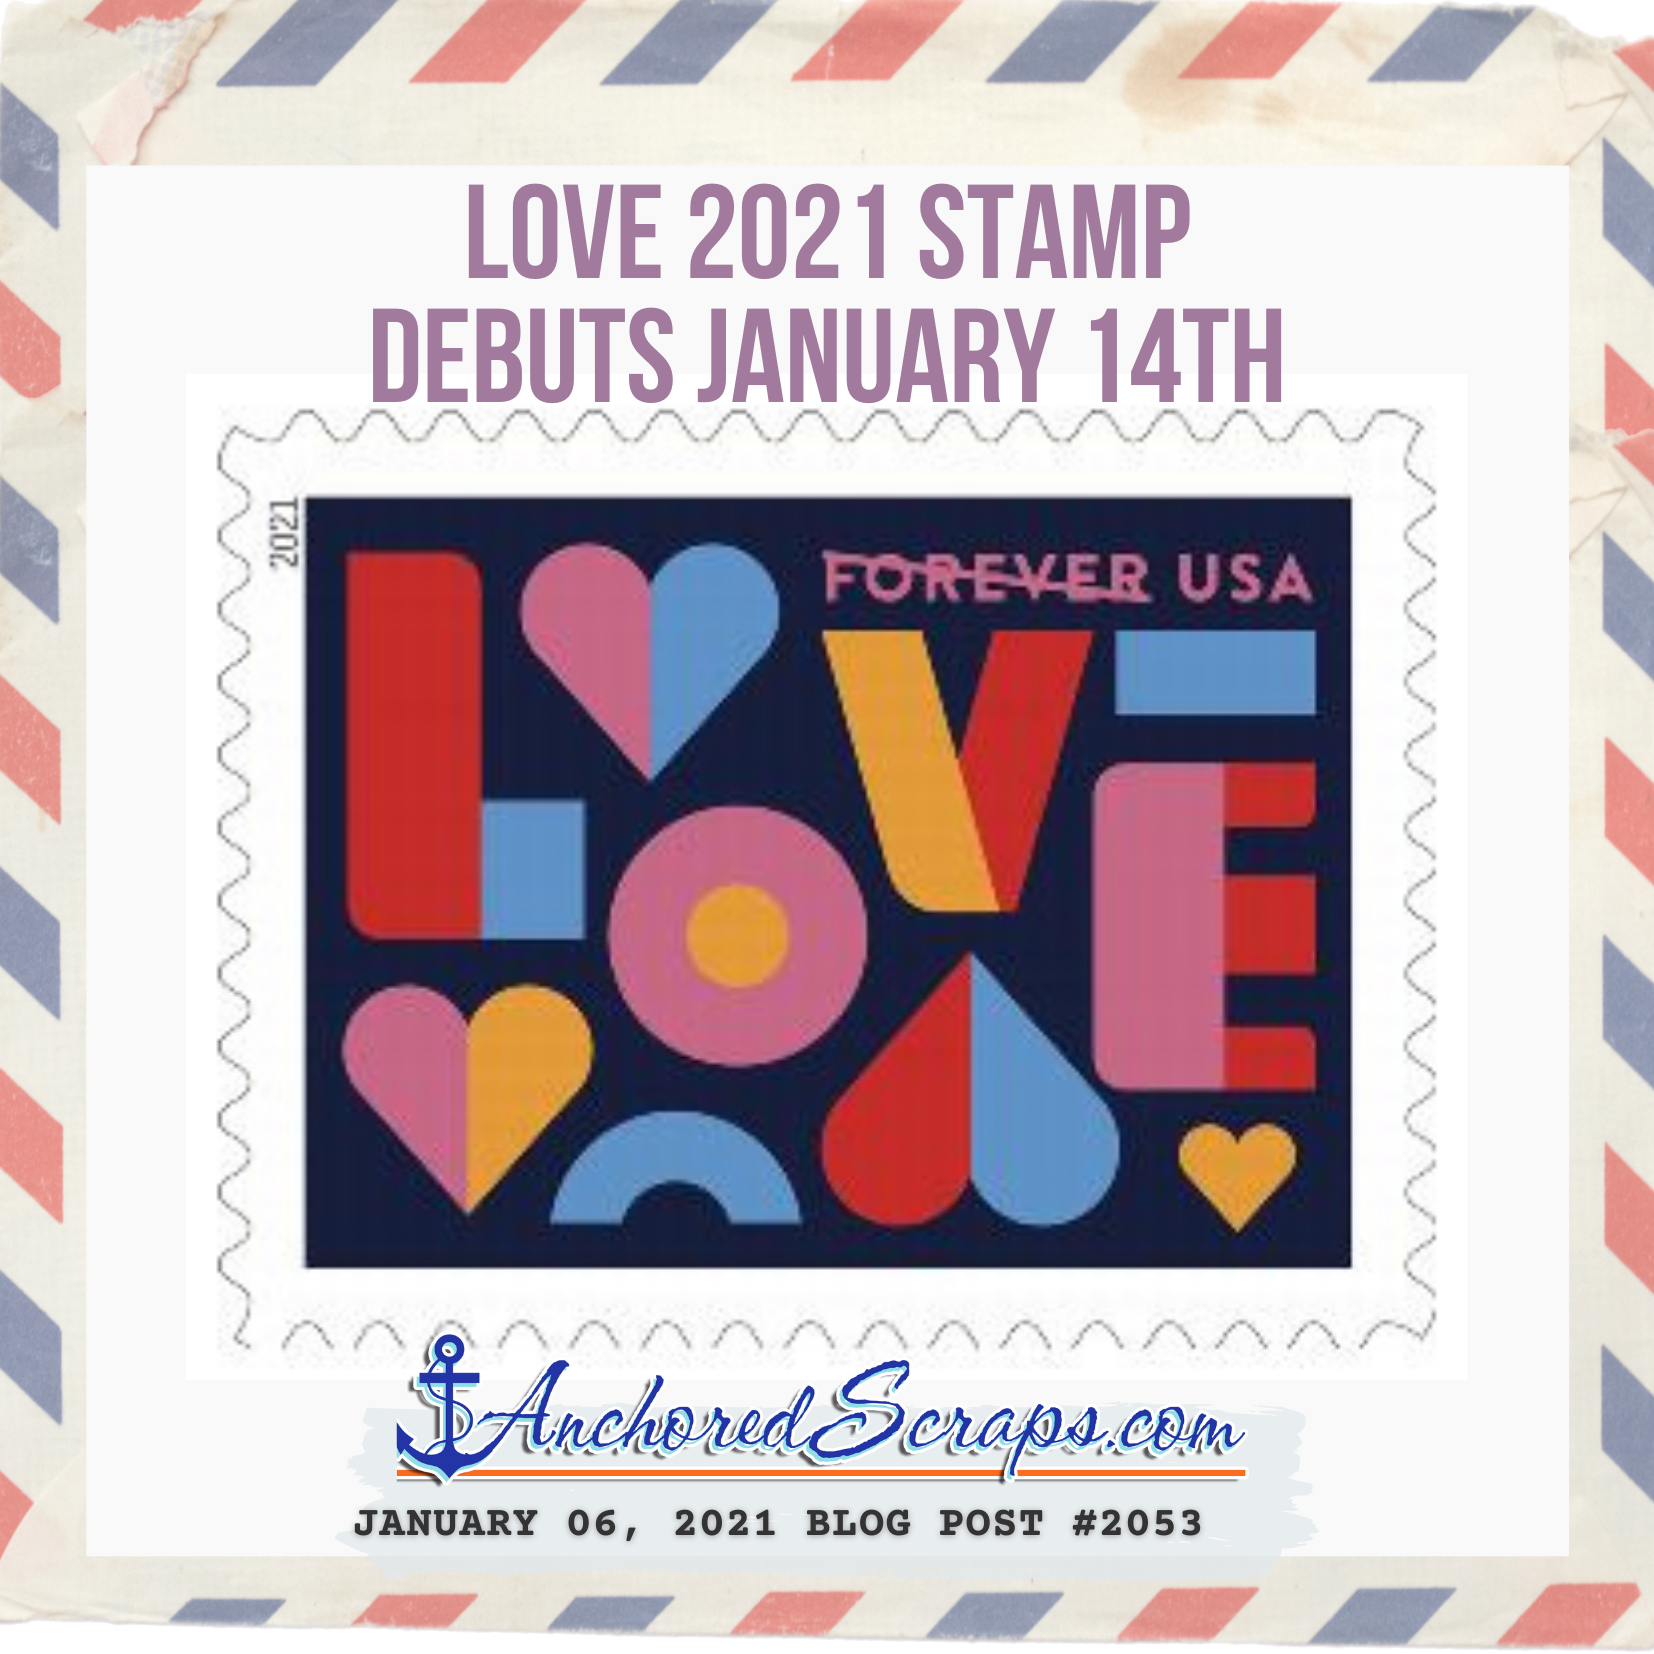 LOVE 2021 Stamp debuts January 14